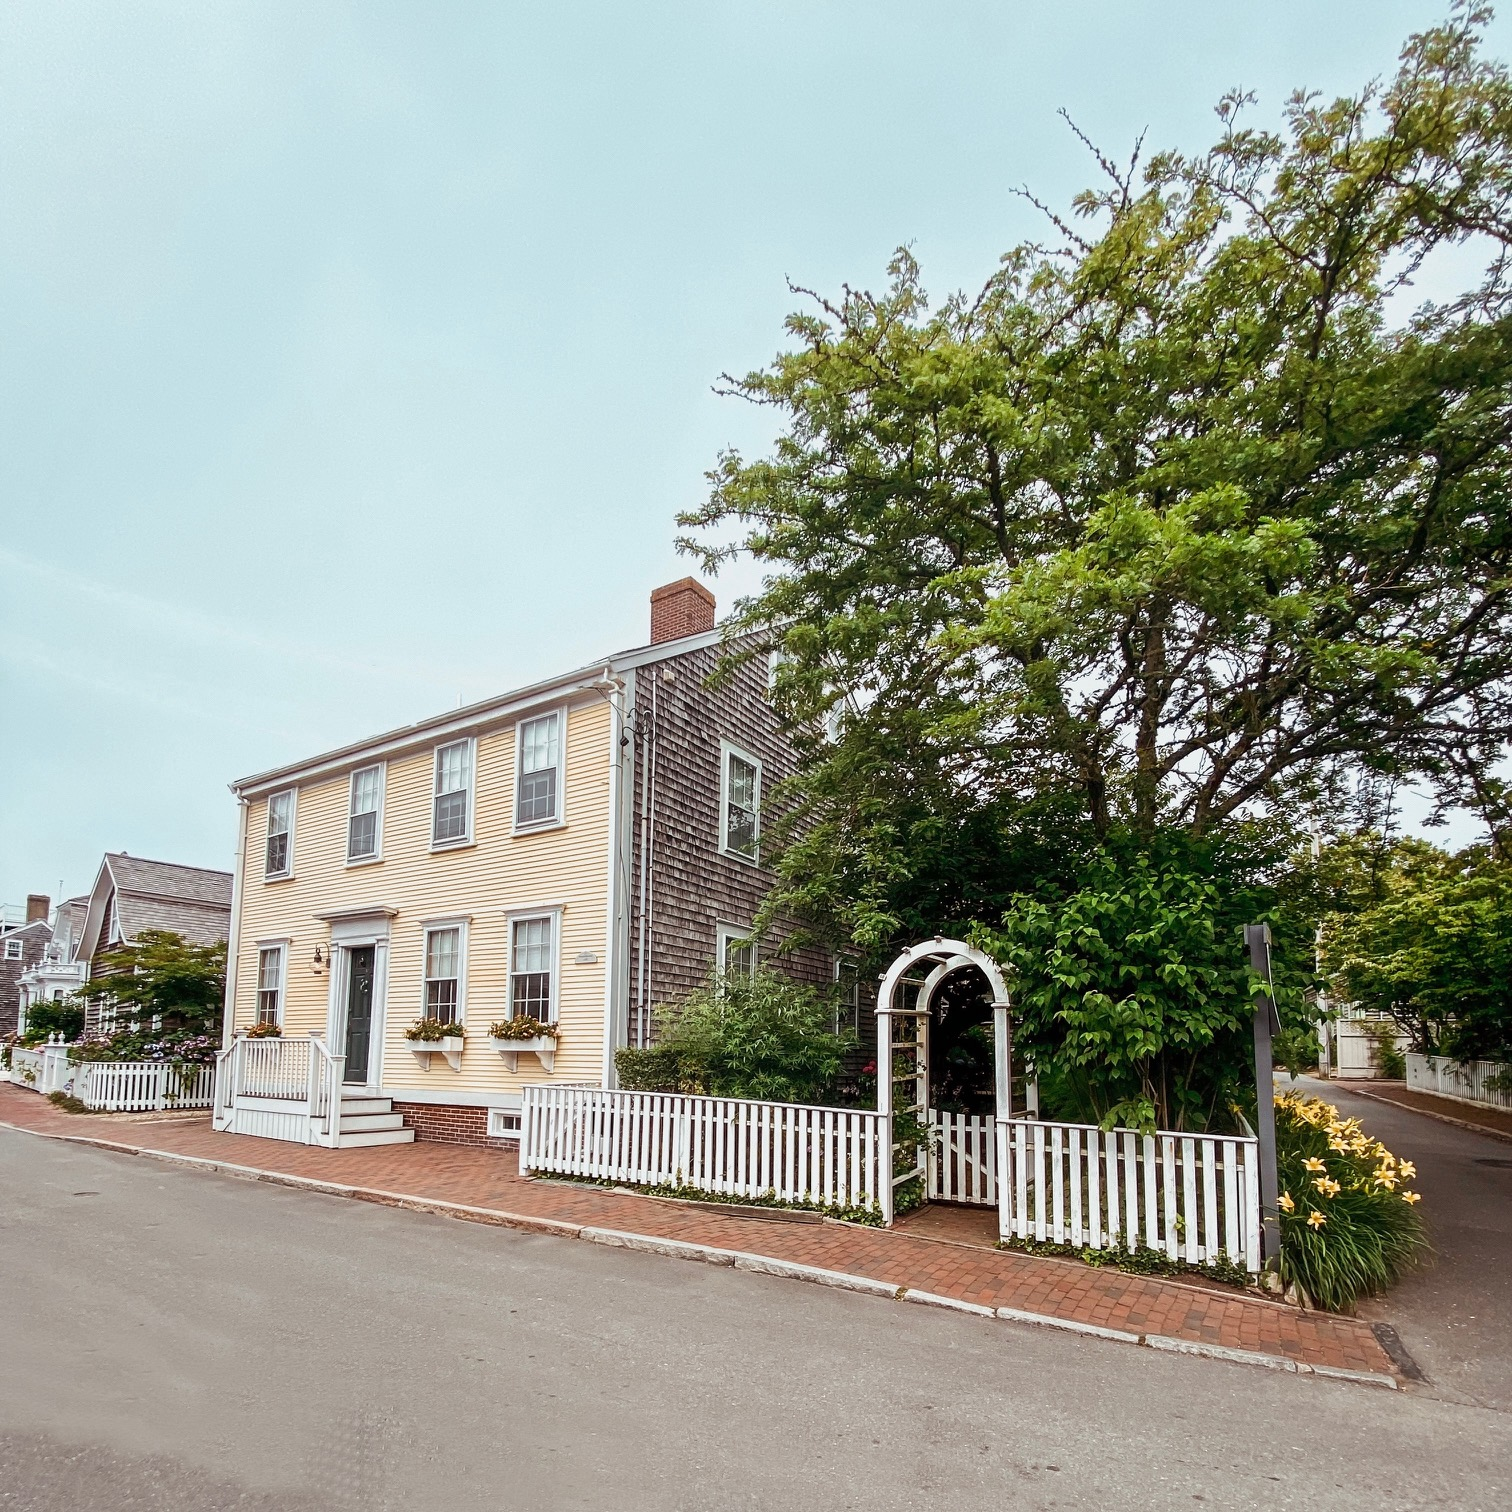 The Nantucket house on which Elin Hilderbrand's book Summer of '69 was based.